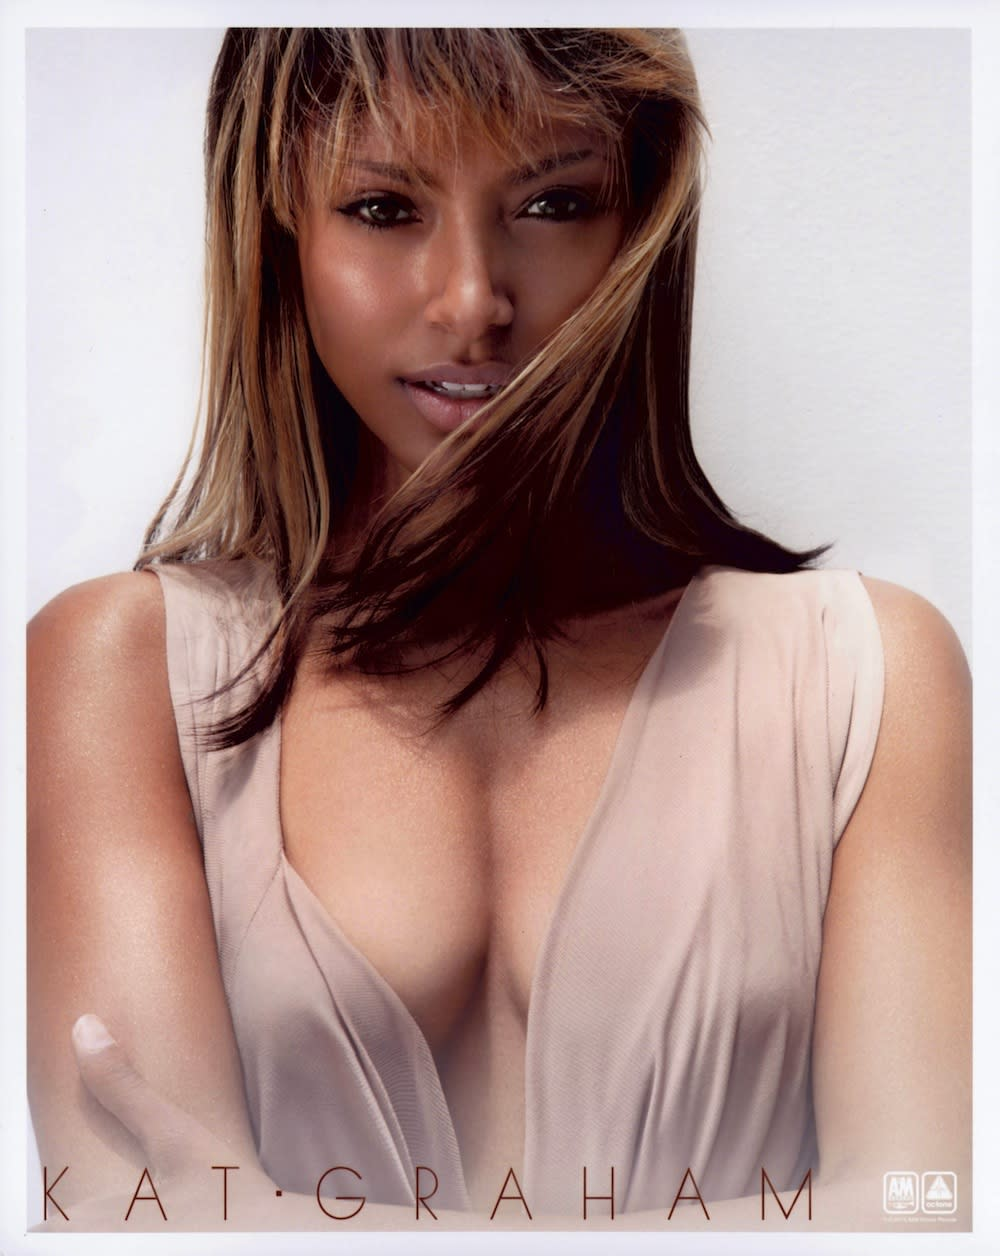 'Vampire Diaries' Star Kat Graham Premieres New Video for 'Power'